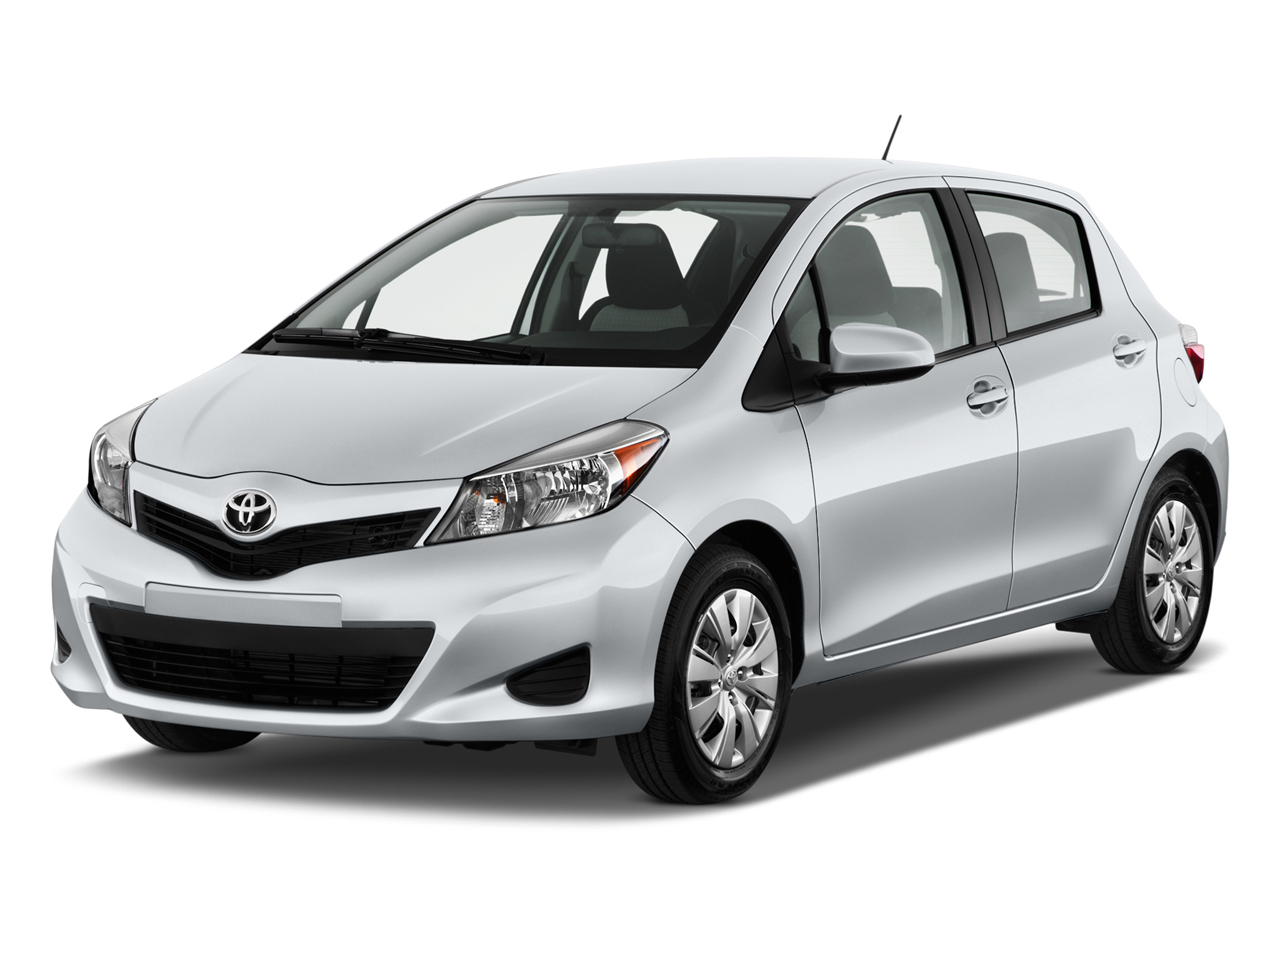 2012 Toyota Yaris Review Ratings Specs Prices And